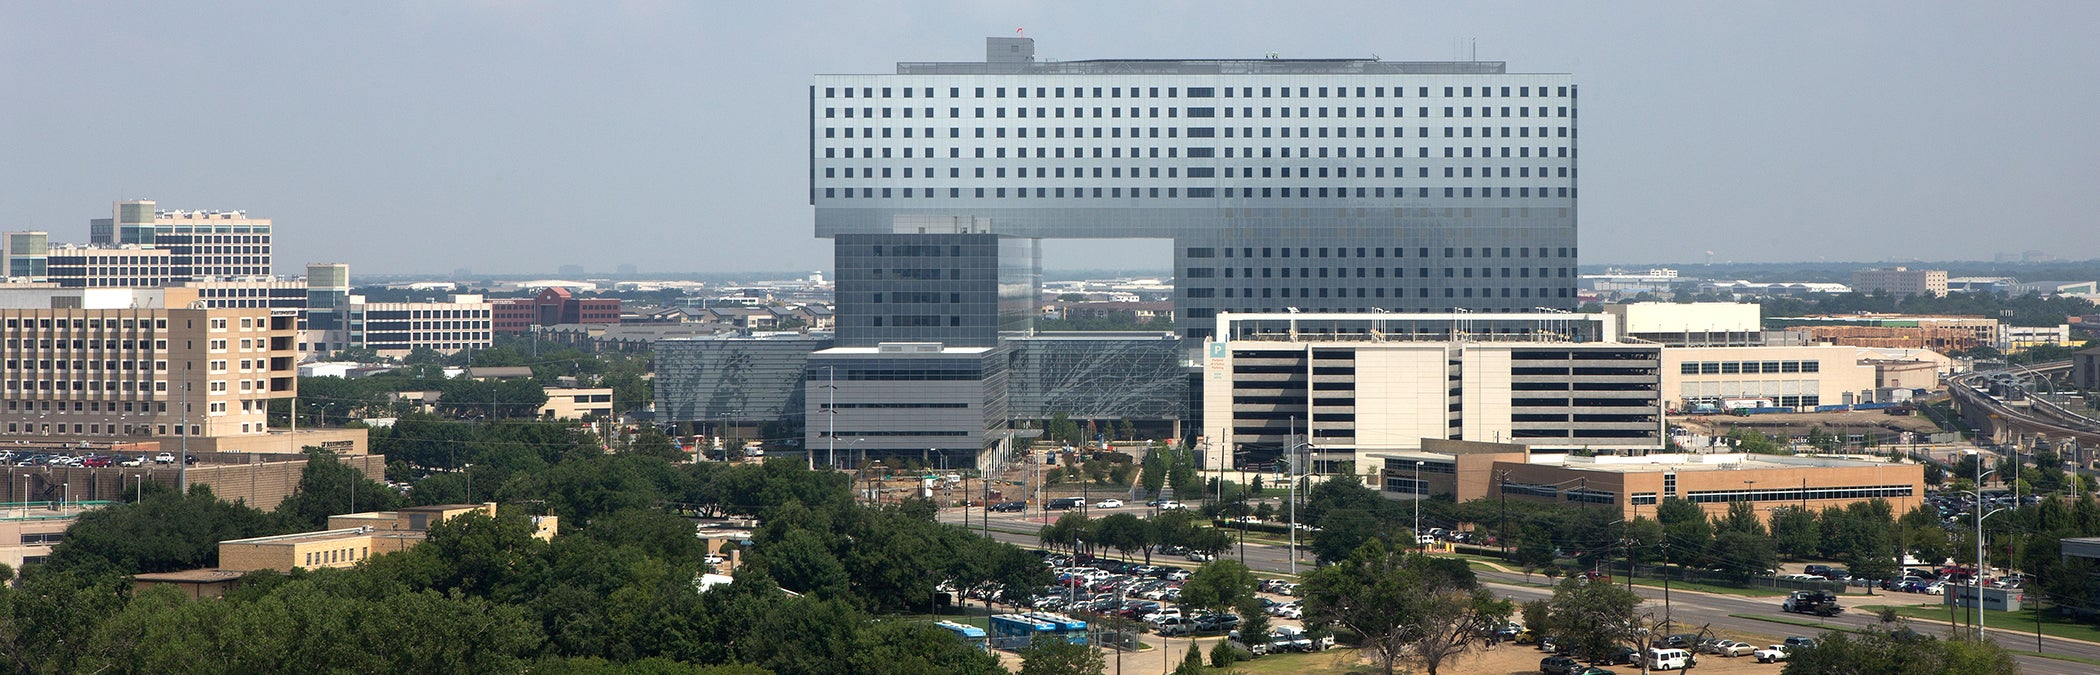 Security Jobs In Dallas >> New Parkland Hospital | HDR